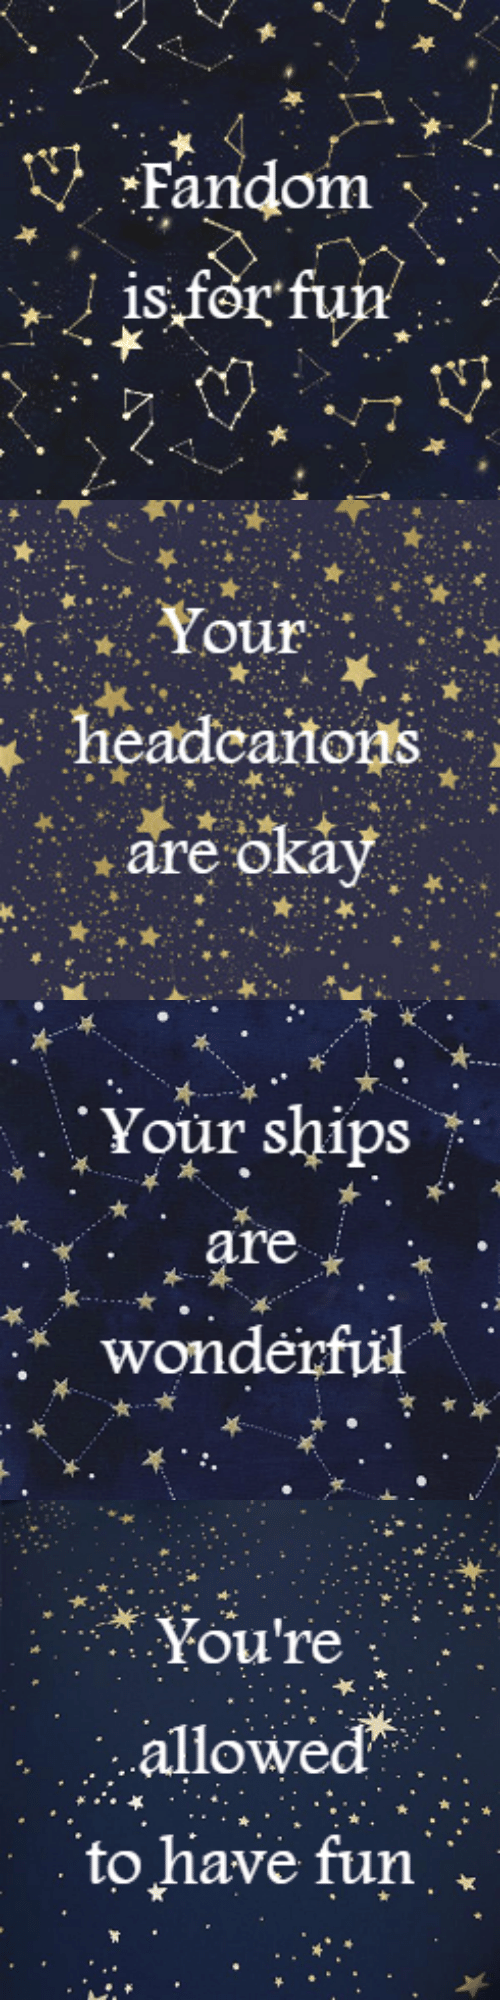 ships: Fandom  is for fun   Your  headcartons  are okay   Your ships  are  wonderful   You're  .allowed  to have fun